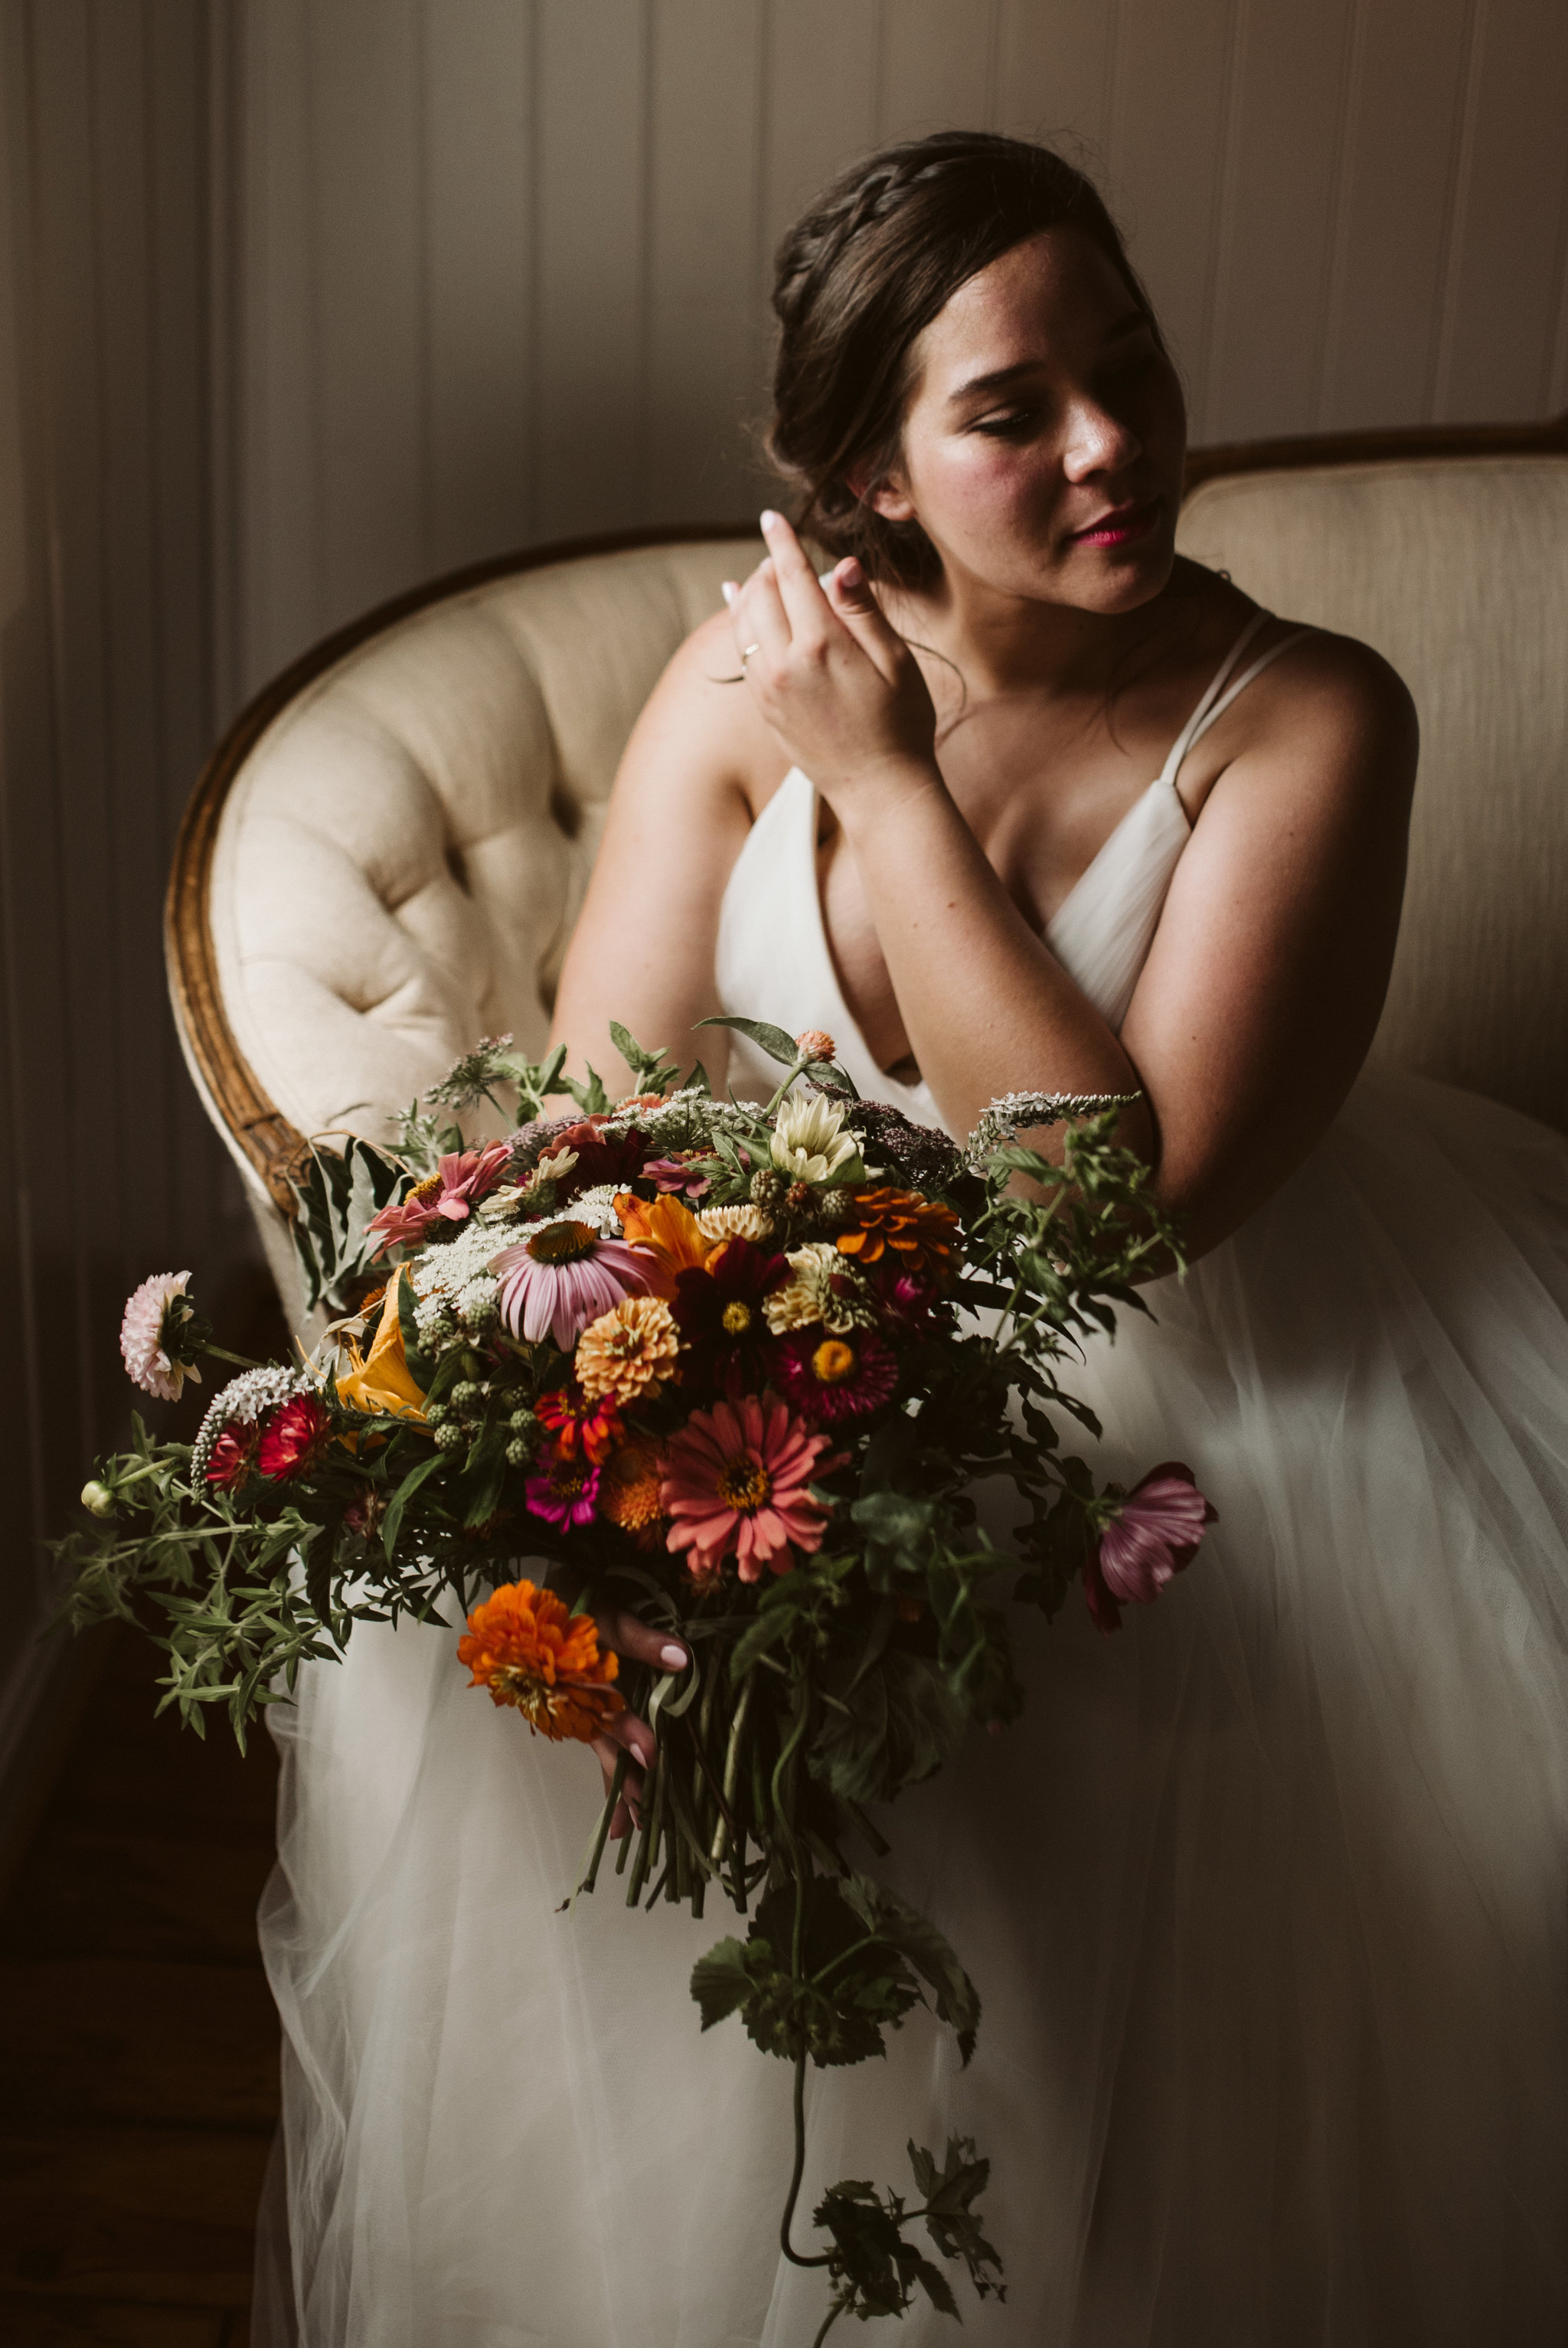 Rocklands Farm, Maryland, Intimate Wedding, Baltimore Wedding Photographer, Sungold Flower Co, Rustic, Romantic, Barn Wedding, Bride Portrait, Purple and Orange and Maroon Flowers in Bouquet